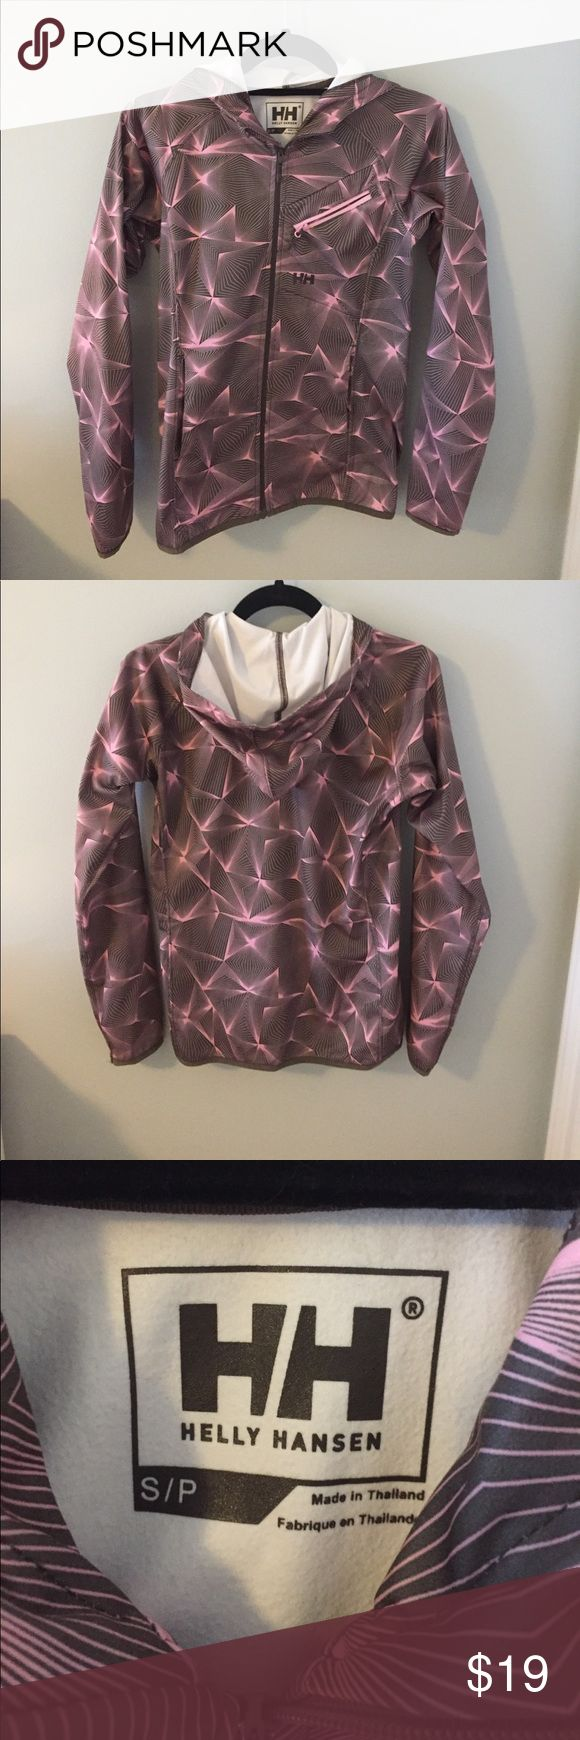 Helly Hansen Long Sleeve Zip Up Jacket Two pockets on each side and one on the front! Purple and brown pattern! Perfect condition rarely worn. Helly Hansen Jackets & Coats